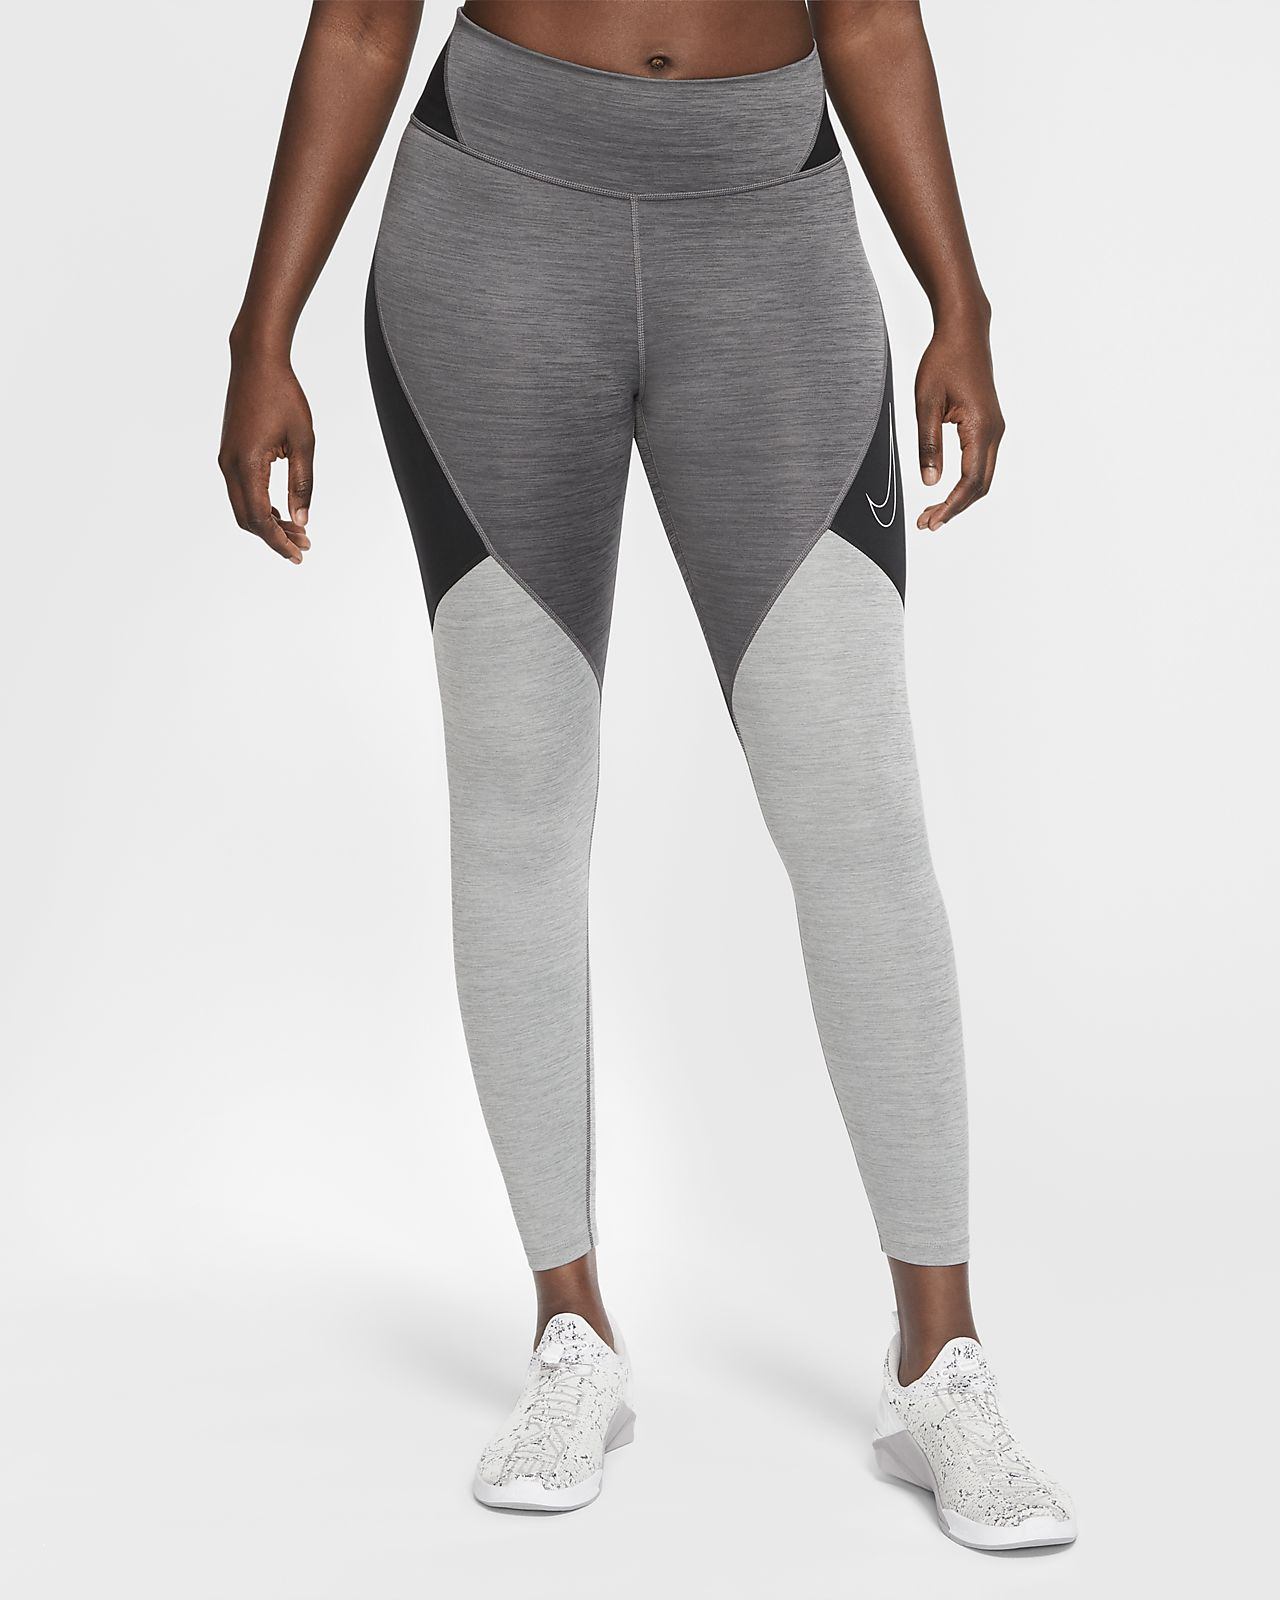 Nike One Women's Mid-Rise Tights